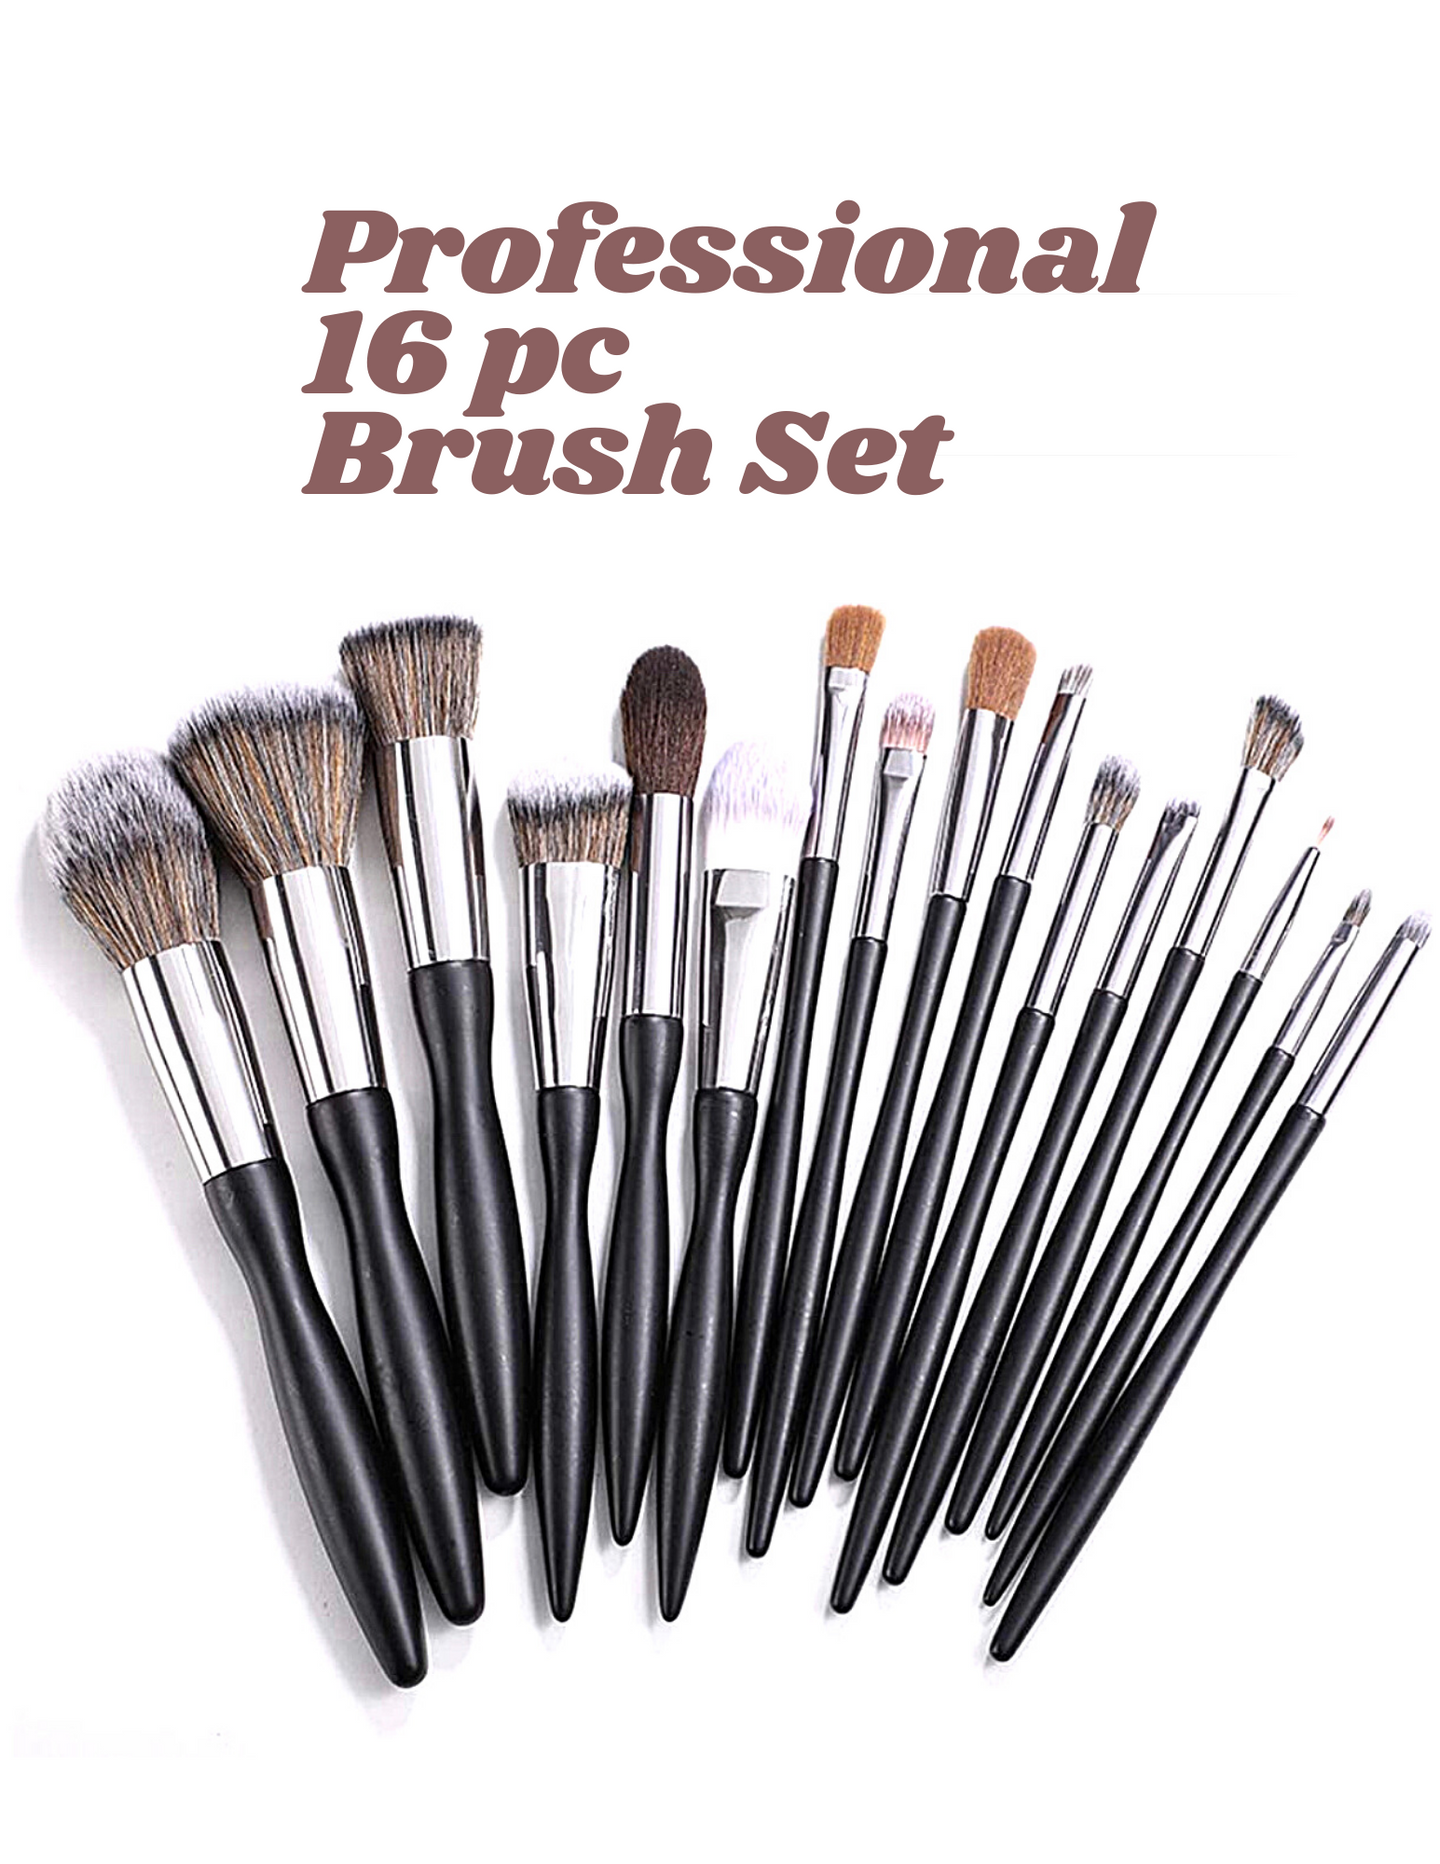 PROFESSIONAL 16PC BRUSH SET